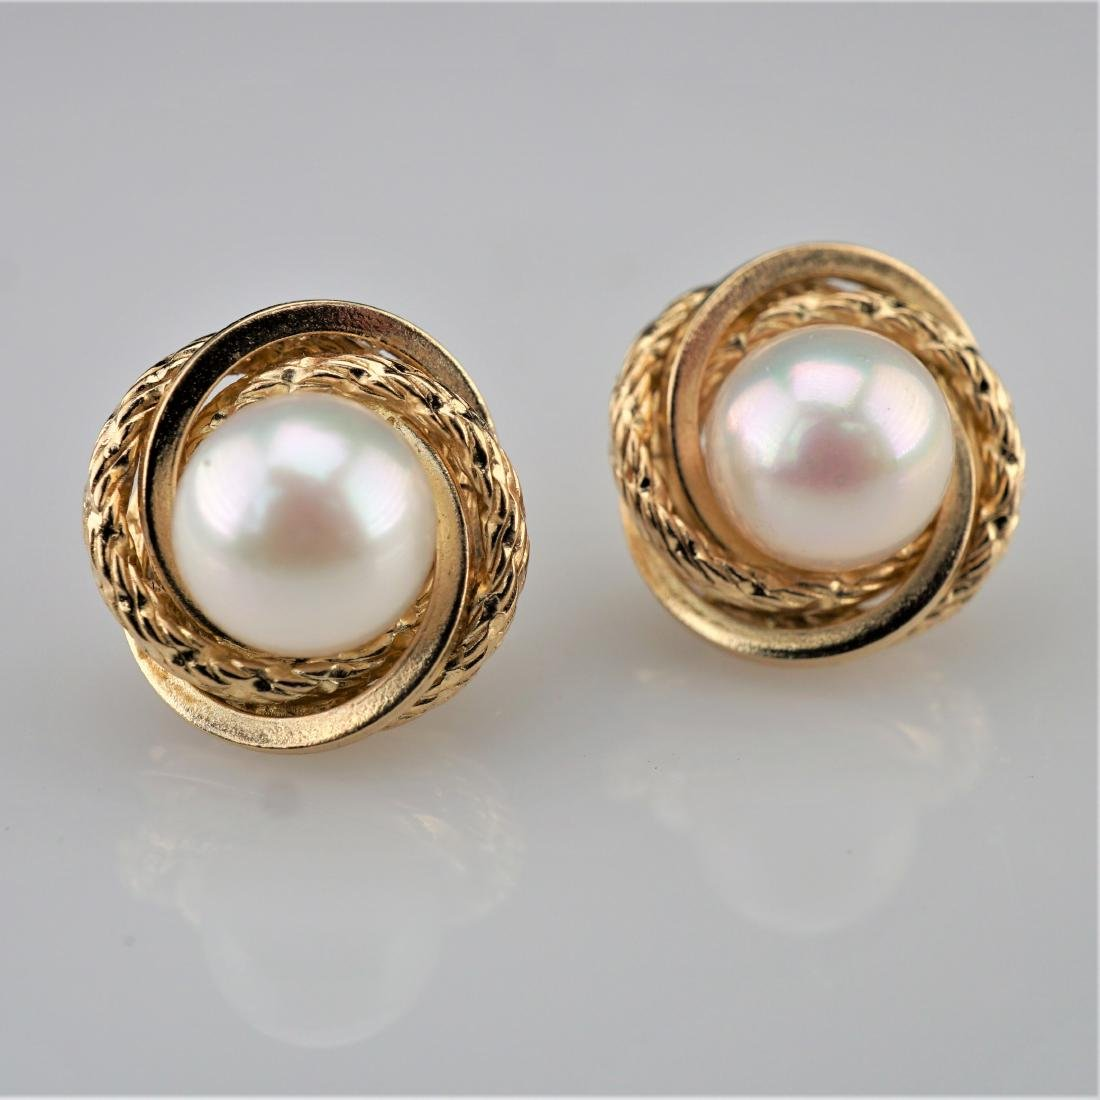 14k YG Pearl Stud Earrings